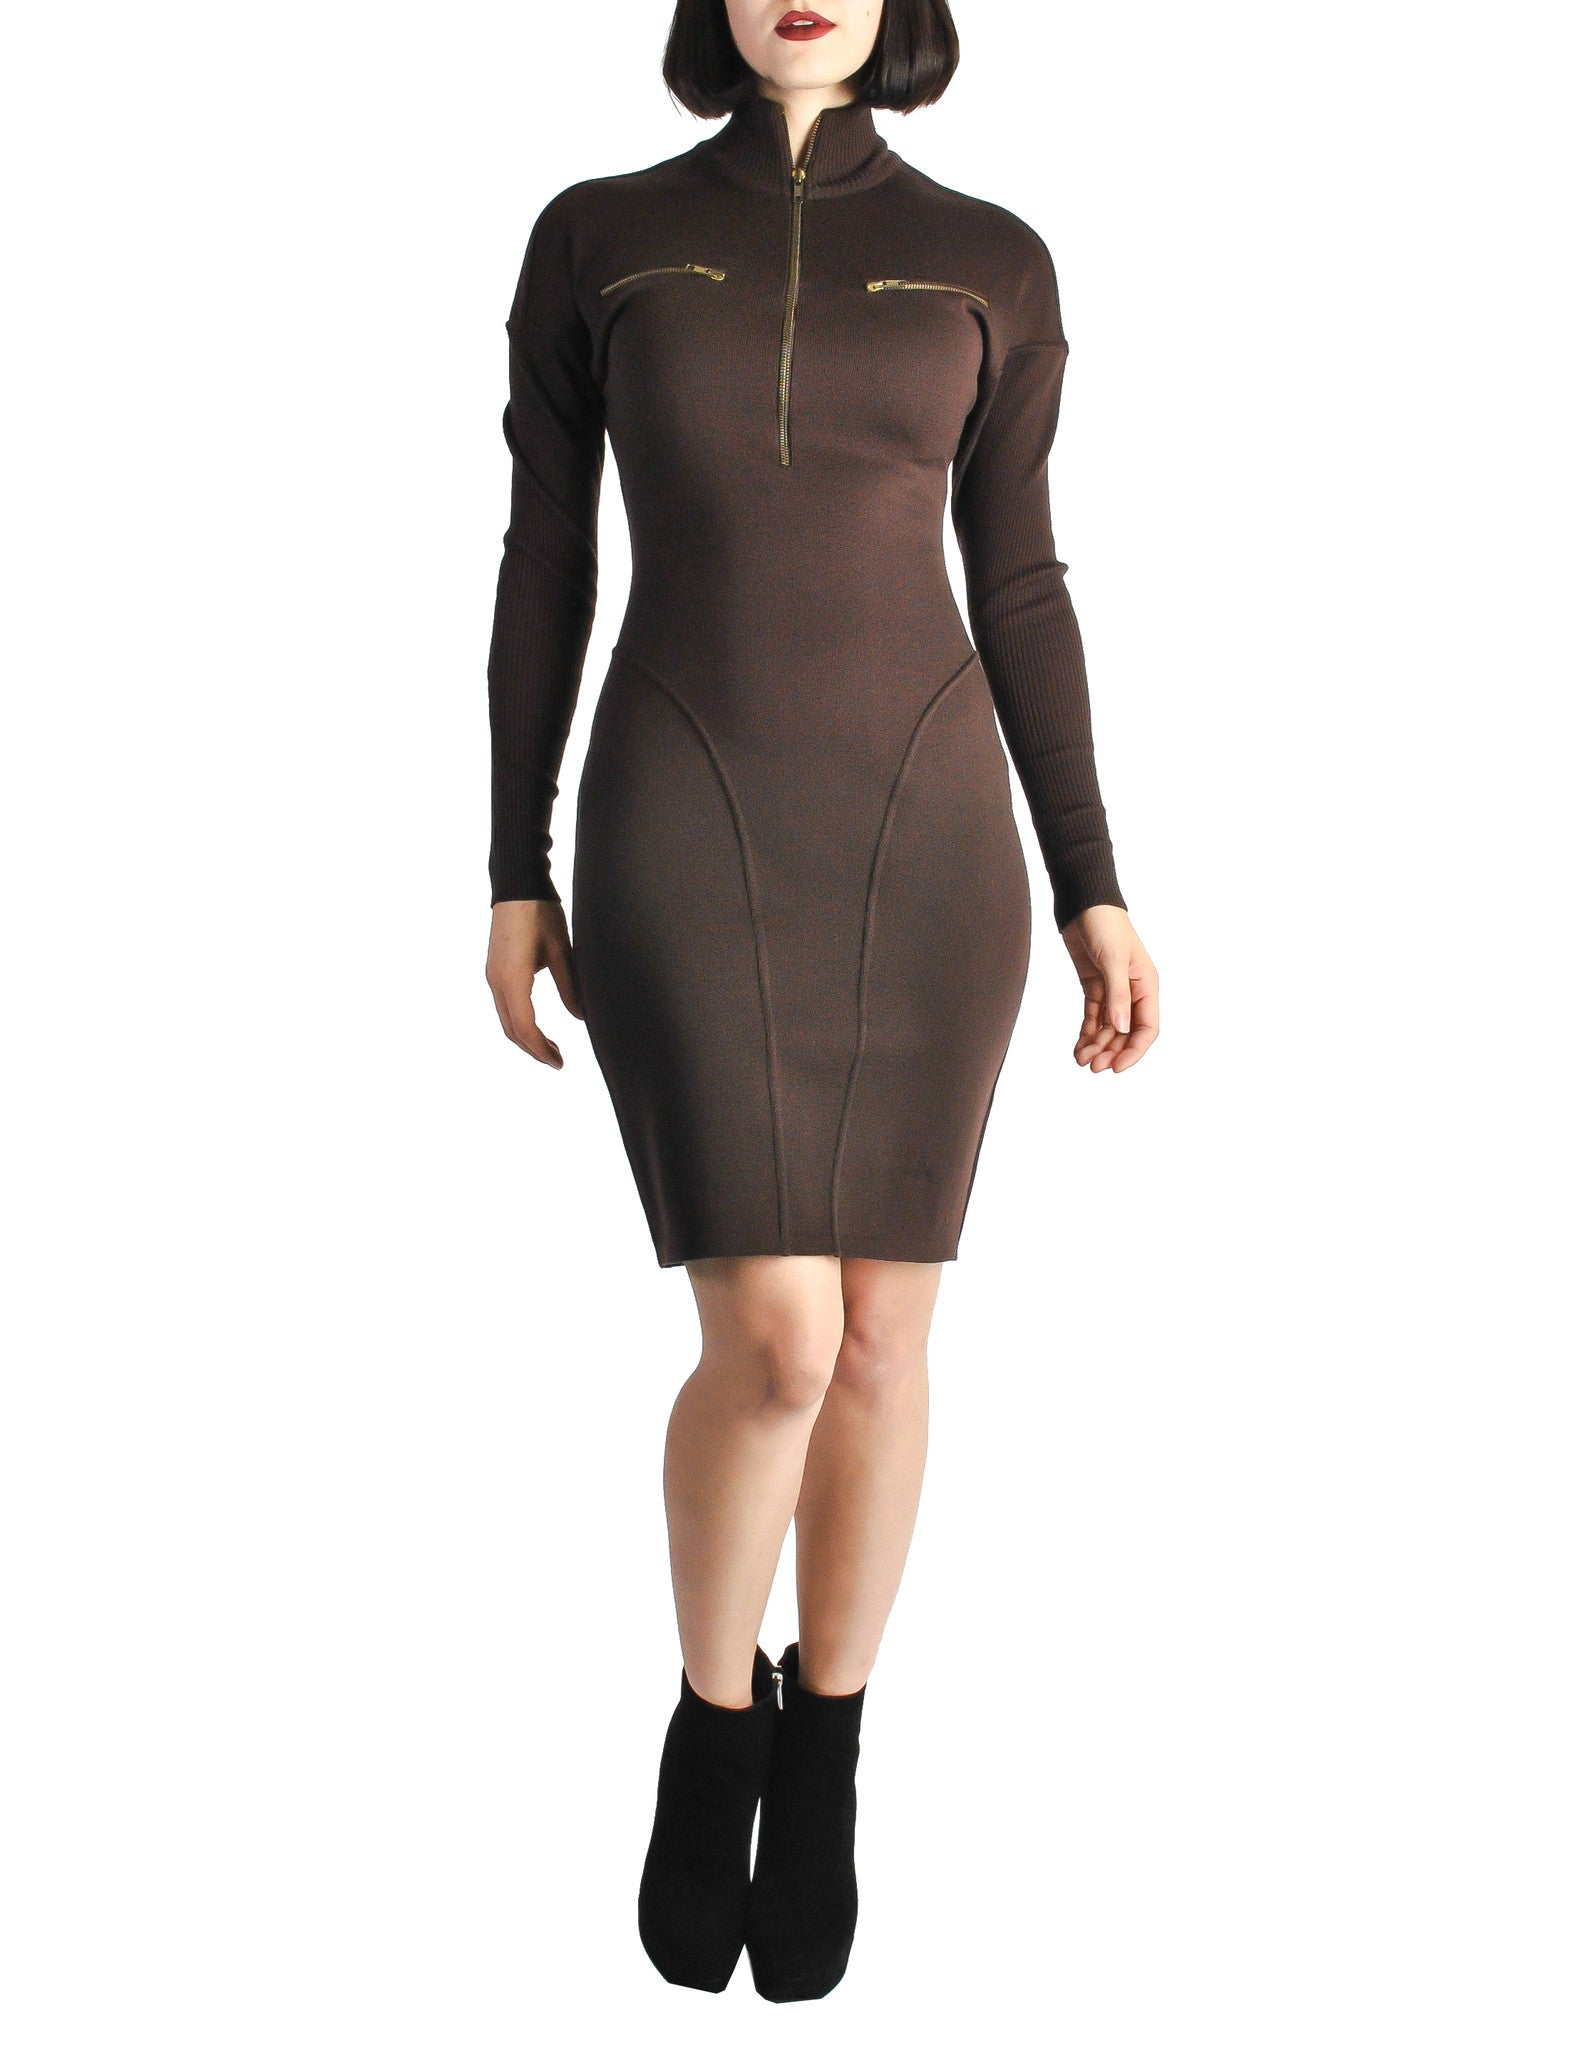 Alaïa Vintage Brown Stretch Knit Body Con Dress - Amarcord Vintage Fashion  - 1